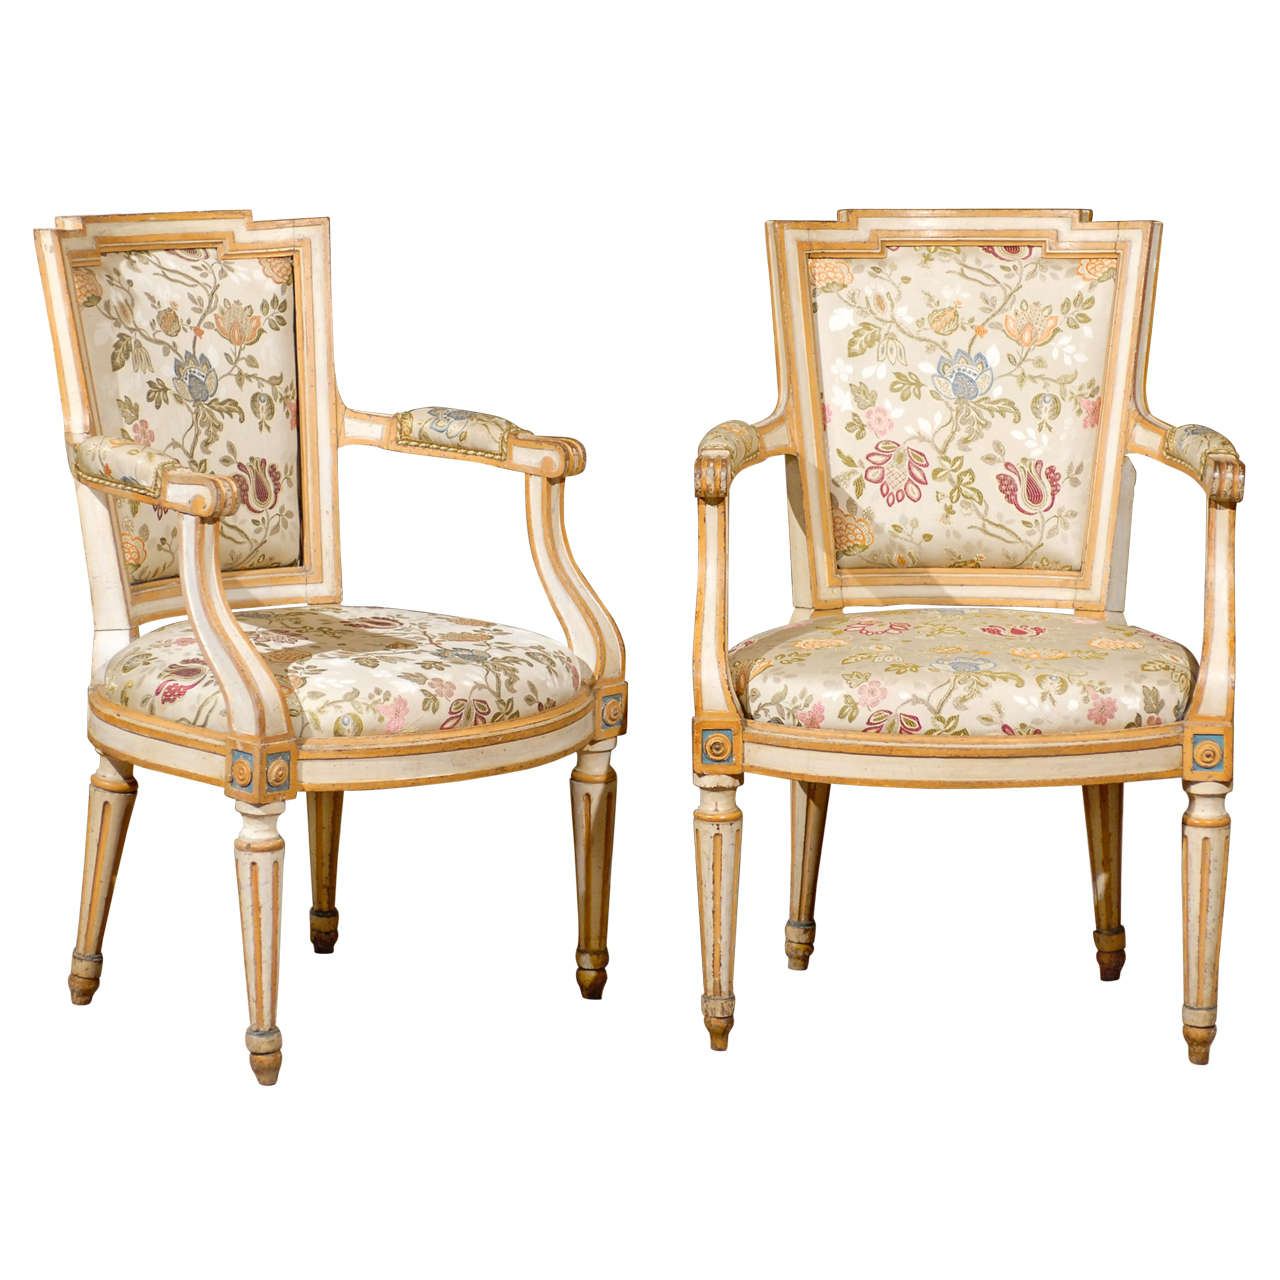 Fine Pair of 18th Century French Louis XVI Painted Fauteuils